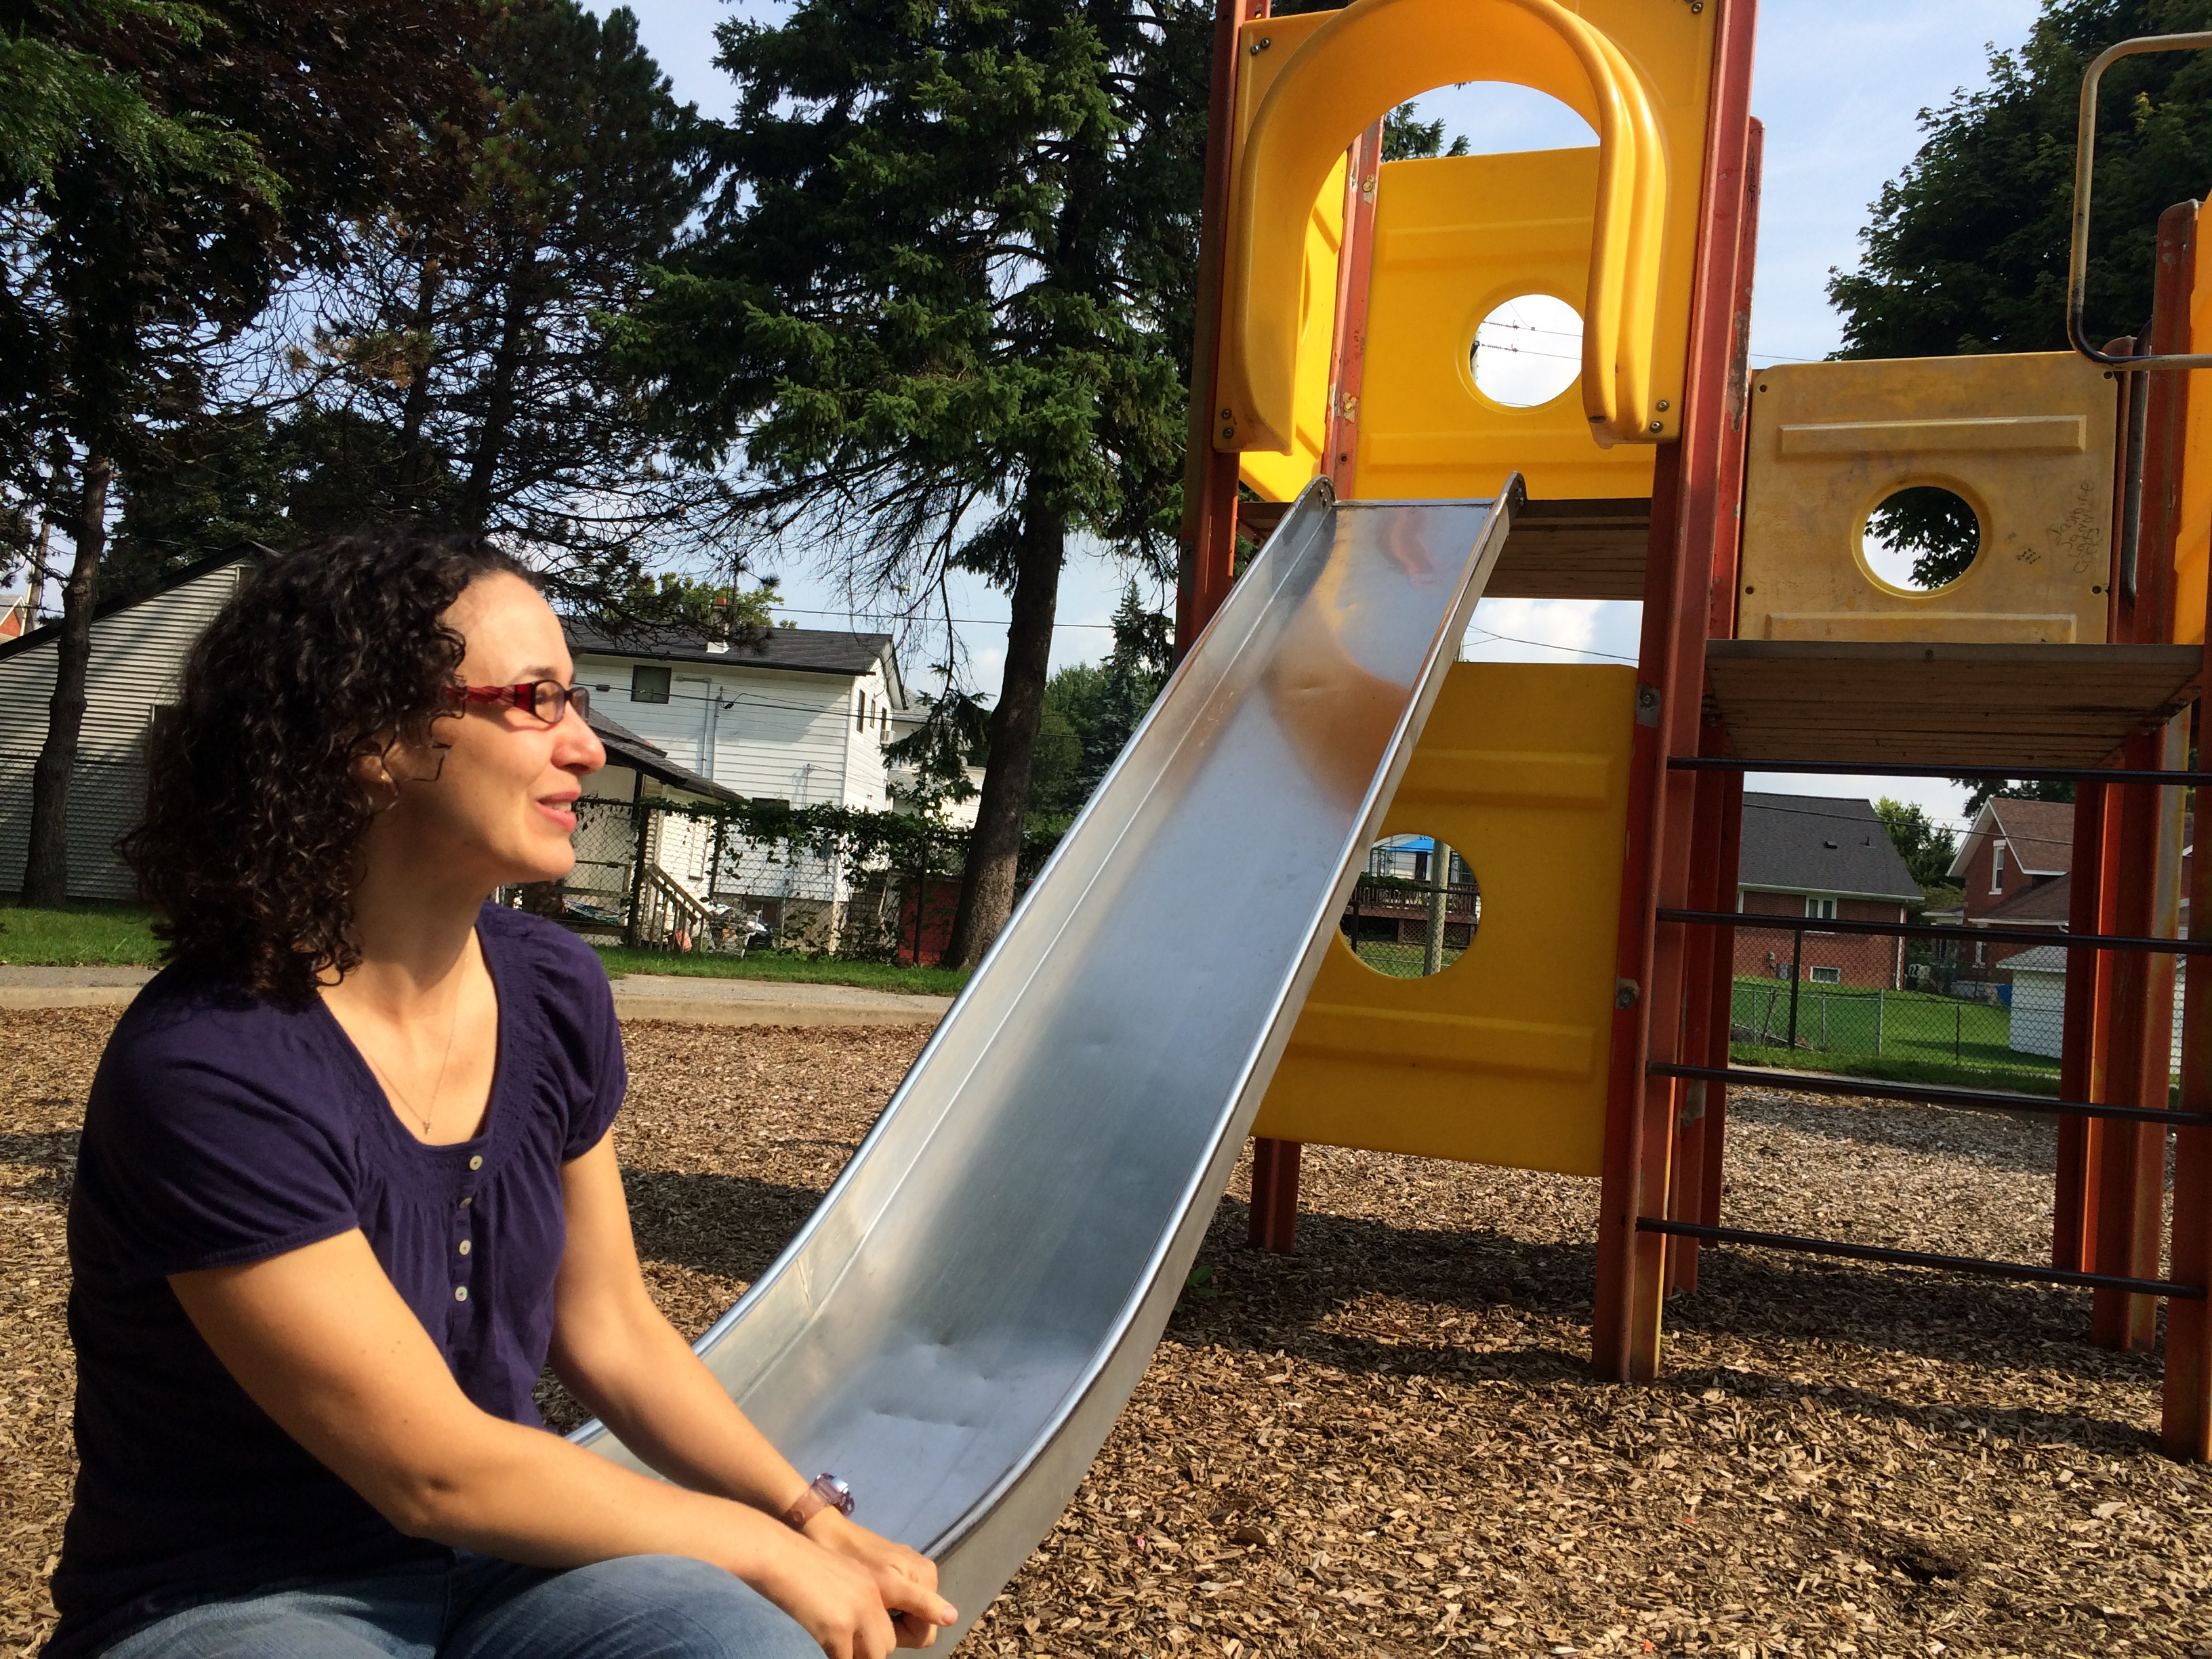 Karen Driedger sits at the end of the old slide at Chestnut Park in Leamington. (Photo by Ricardo Veneza)